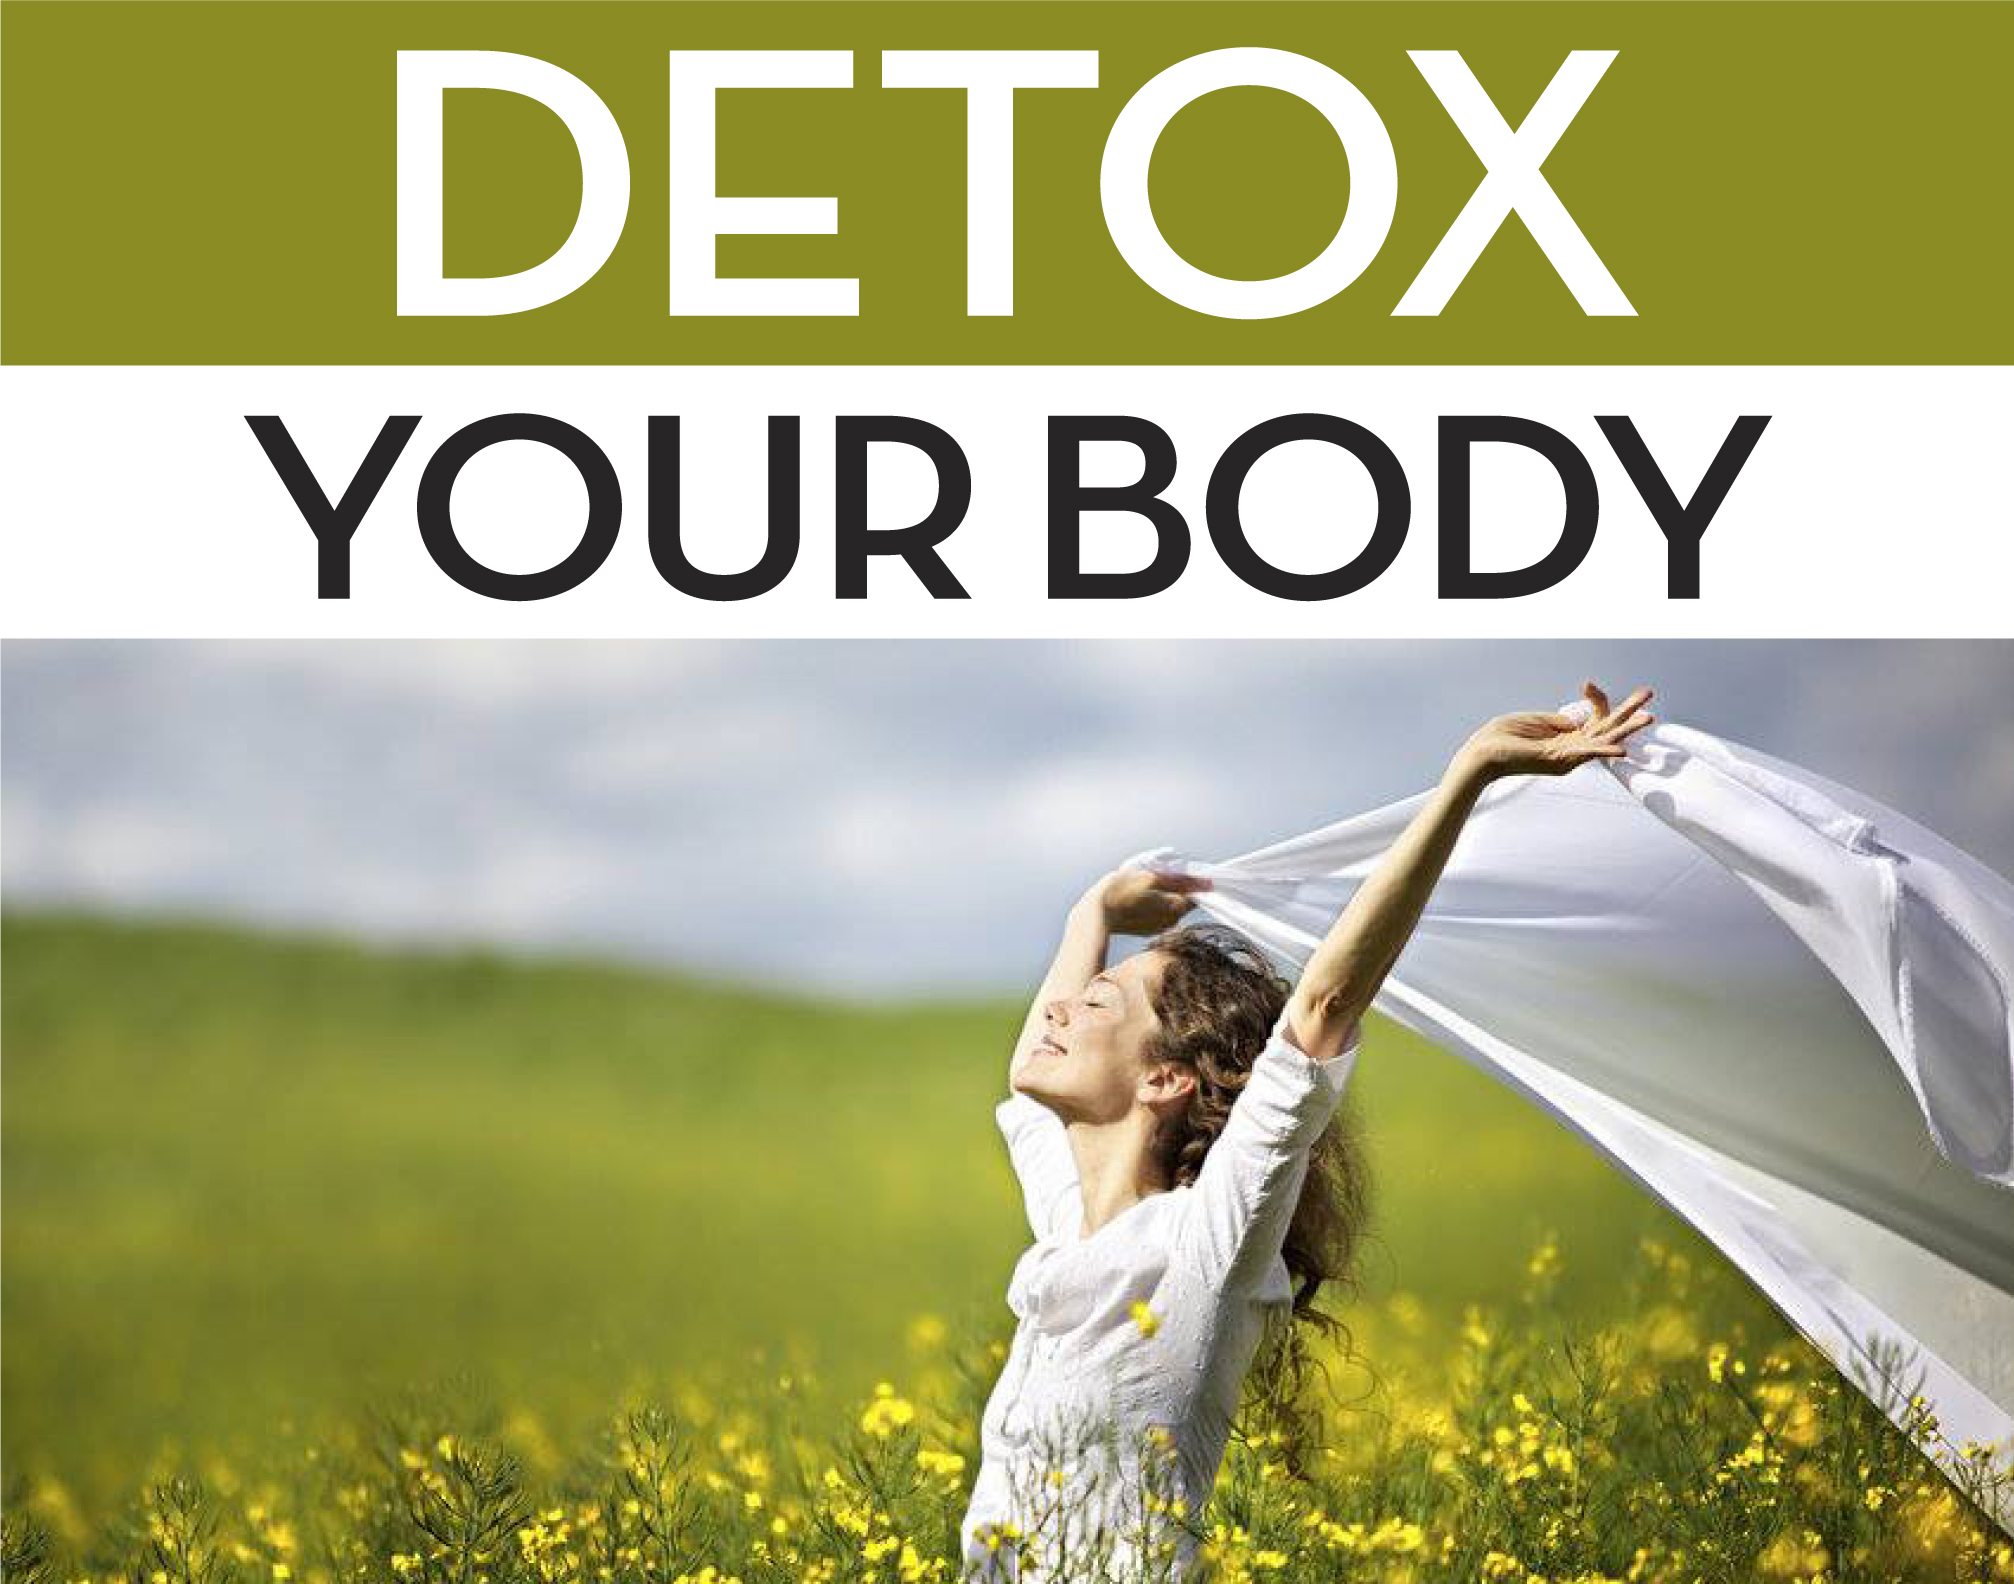 Detoxing the Body - Detox Program Houston